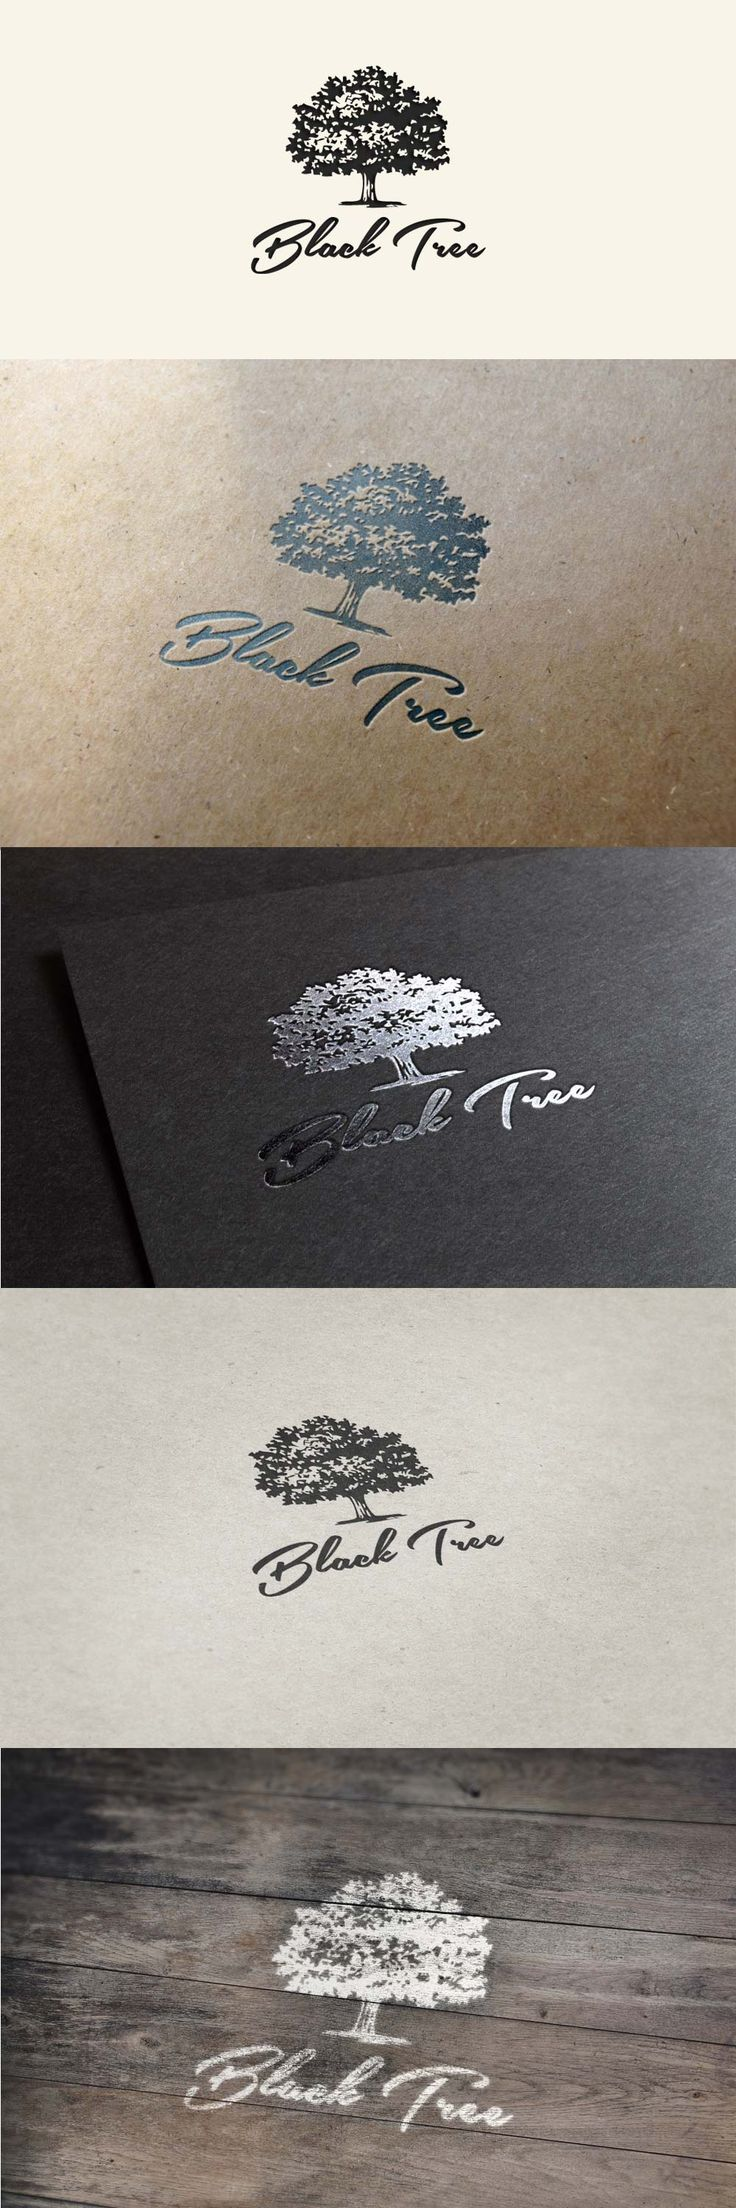 I like the tree on this one.  I really like the font, too, but it's different than the fonts that I'm generally drawn to.